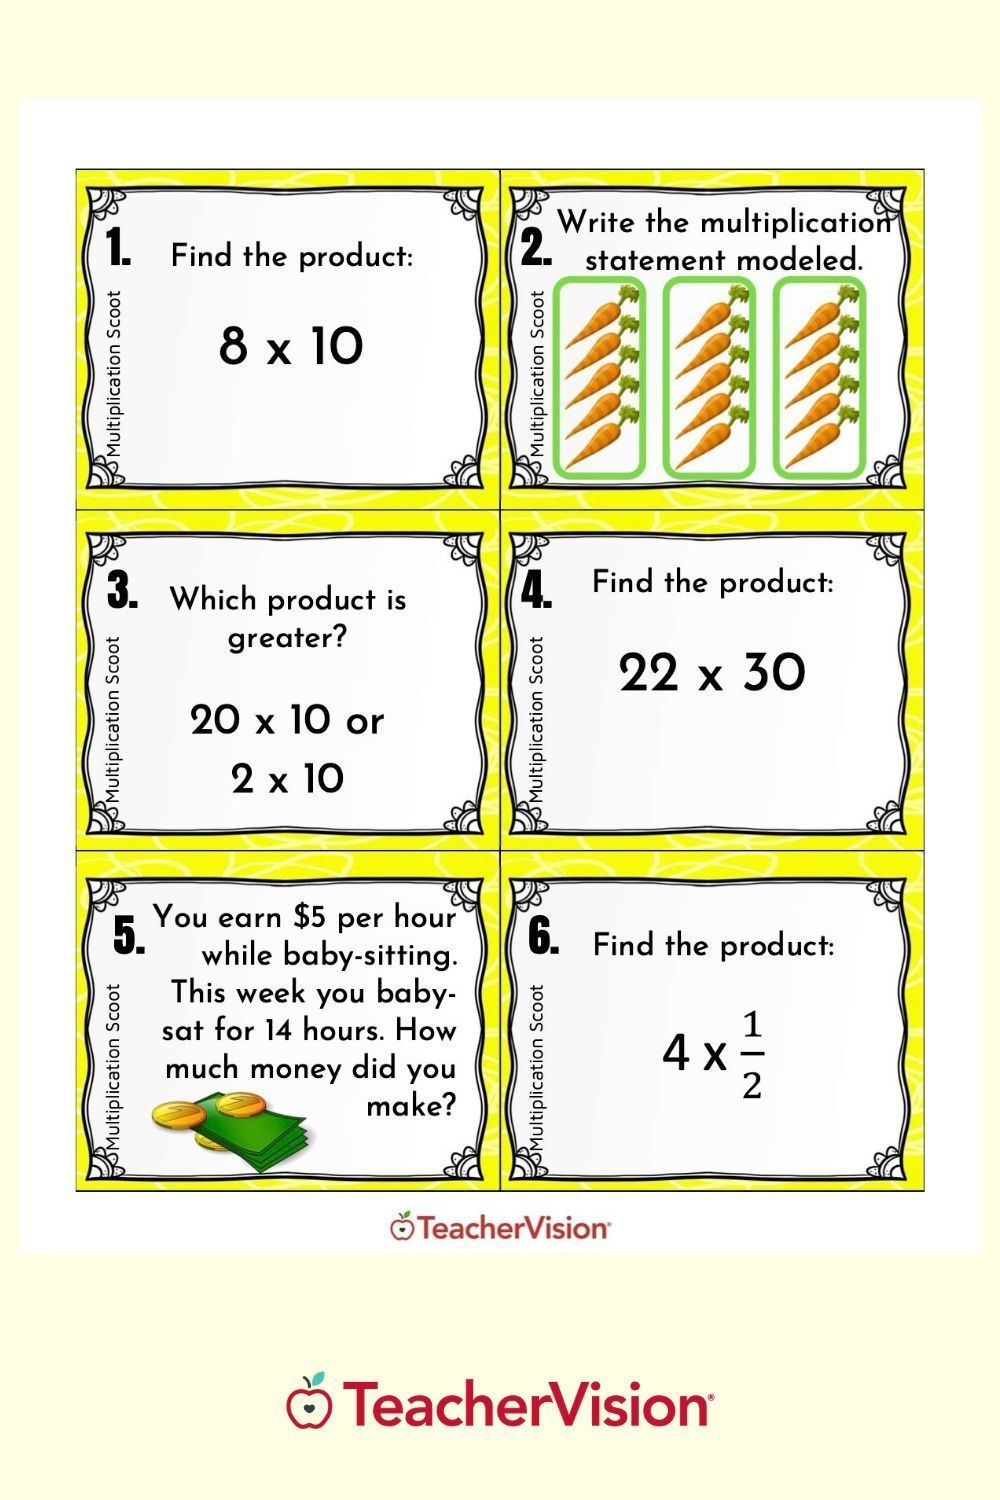 Multiplication Scoot Math Game For Classroom Or Remote Learning In 2021 Math Practice Worksheets Fun Math Activities Math Scoot [ 1500 x 1000 Pixel ]